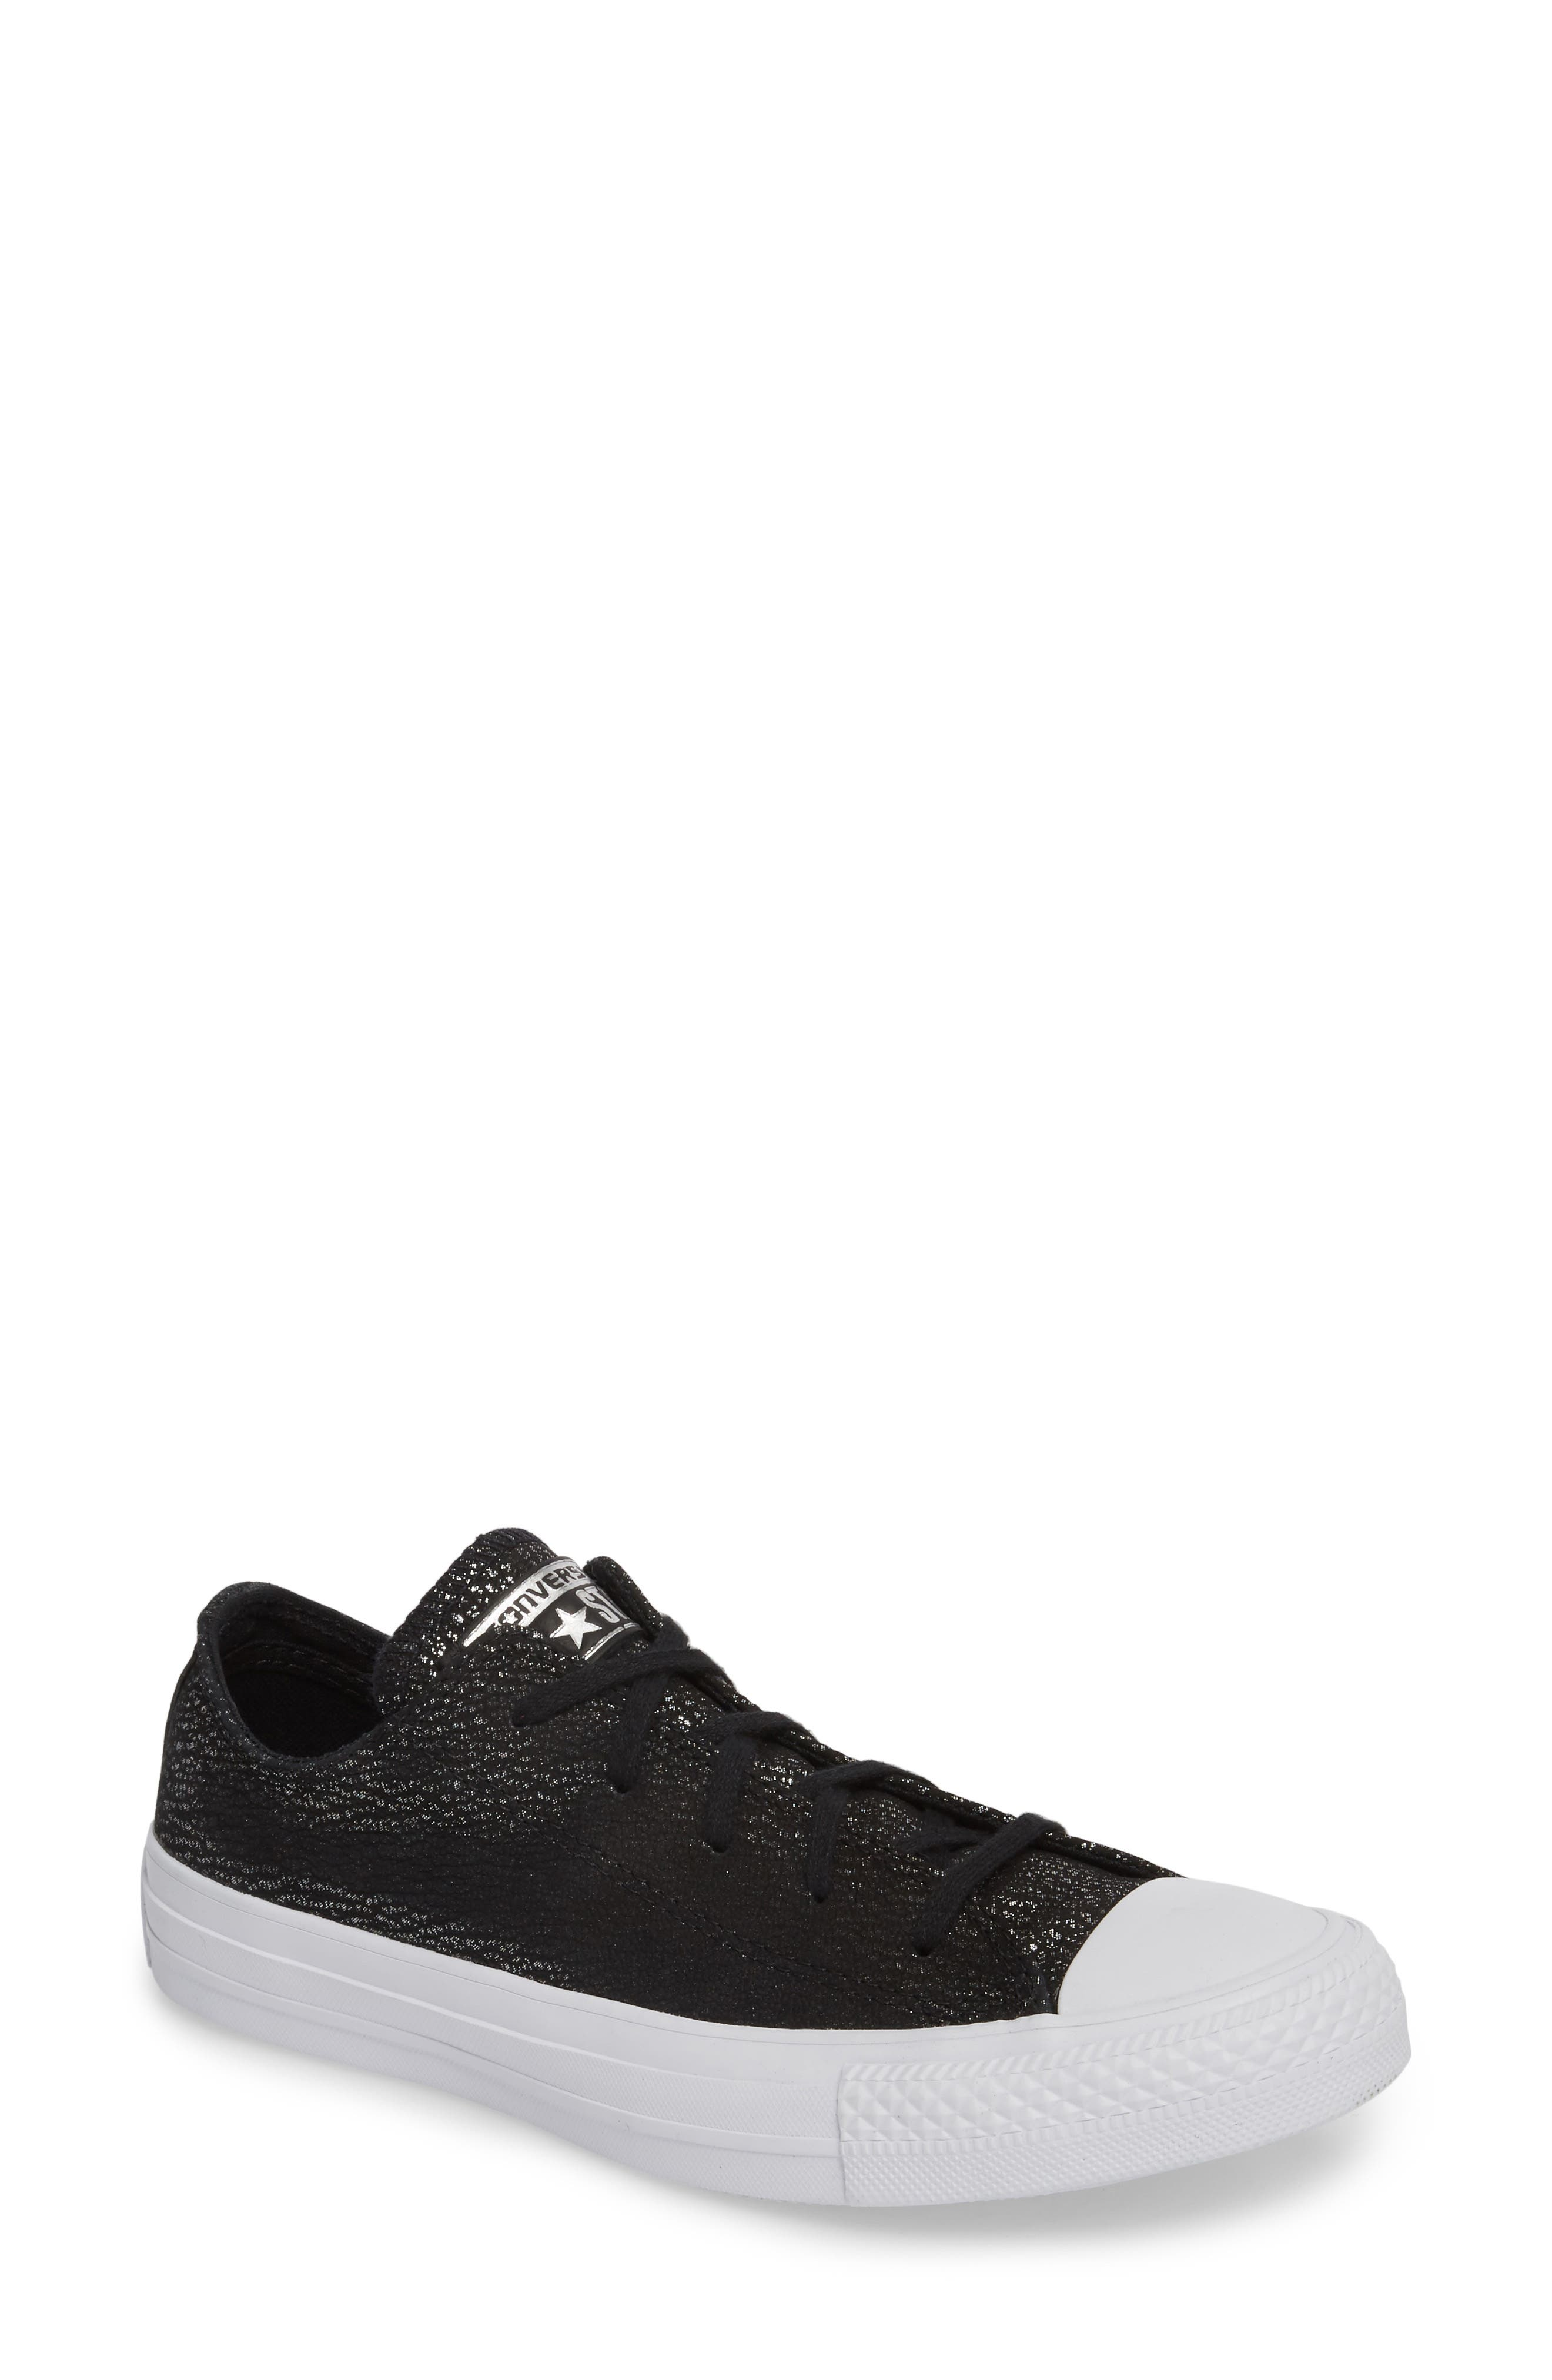 Chuck Taylor<sup>®</sup> All Star<sup>®</sup> Tipped Metallic Low Top Sneaker,                             Main thumbnail 1, color,                             001